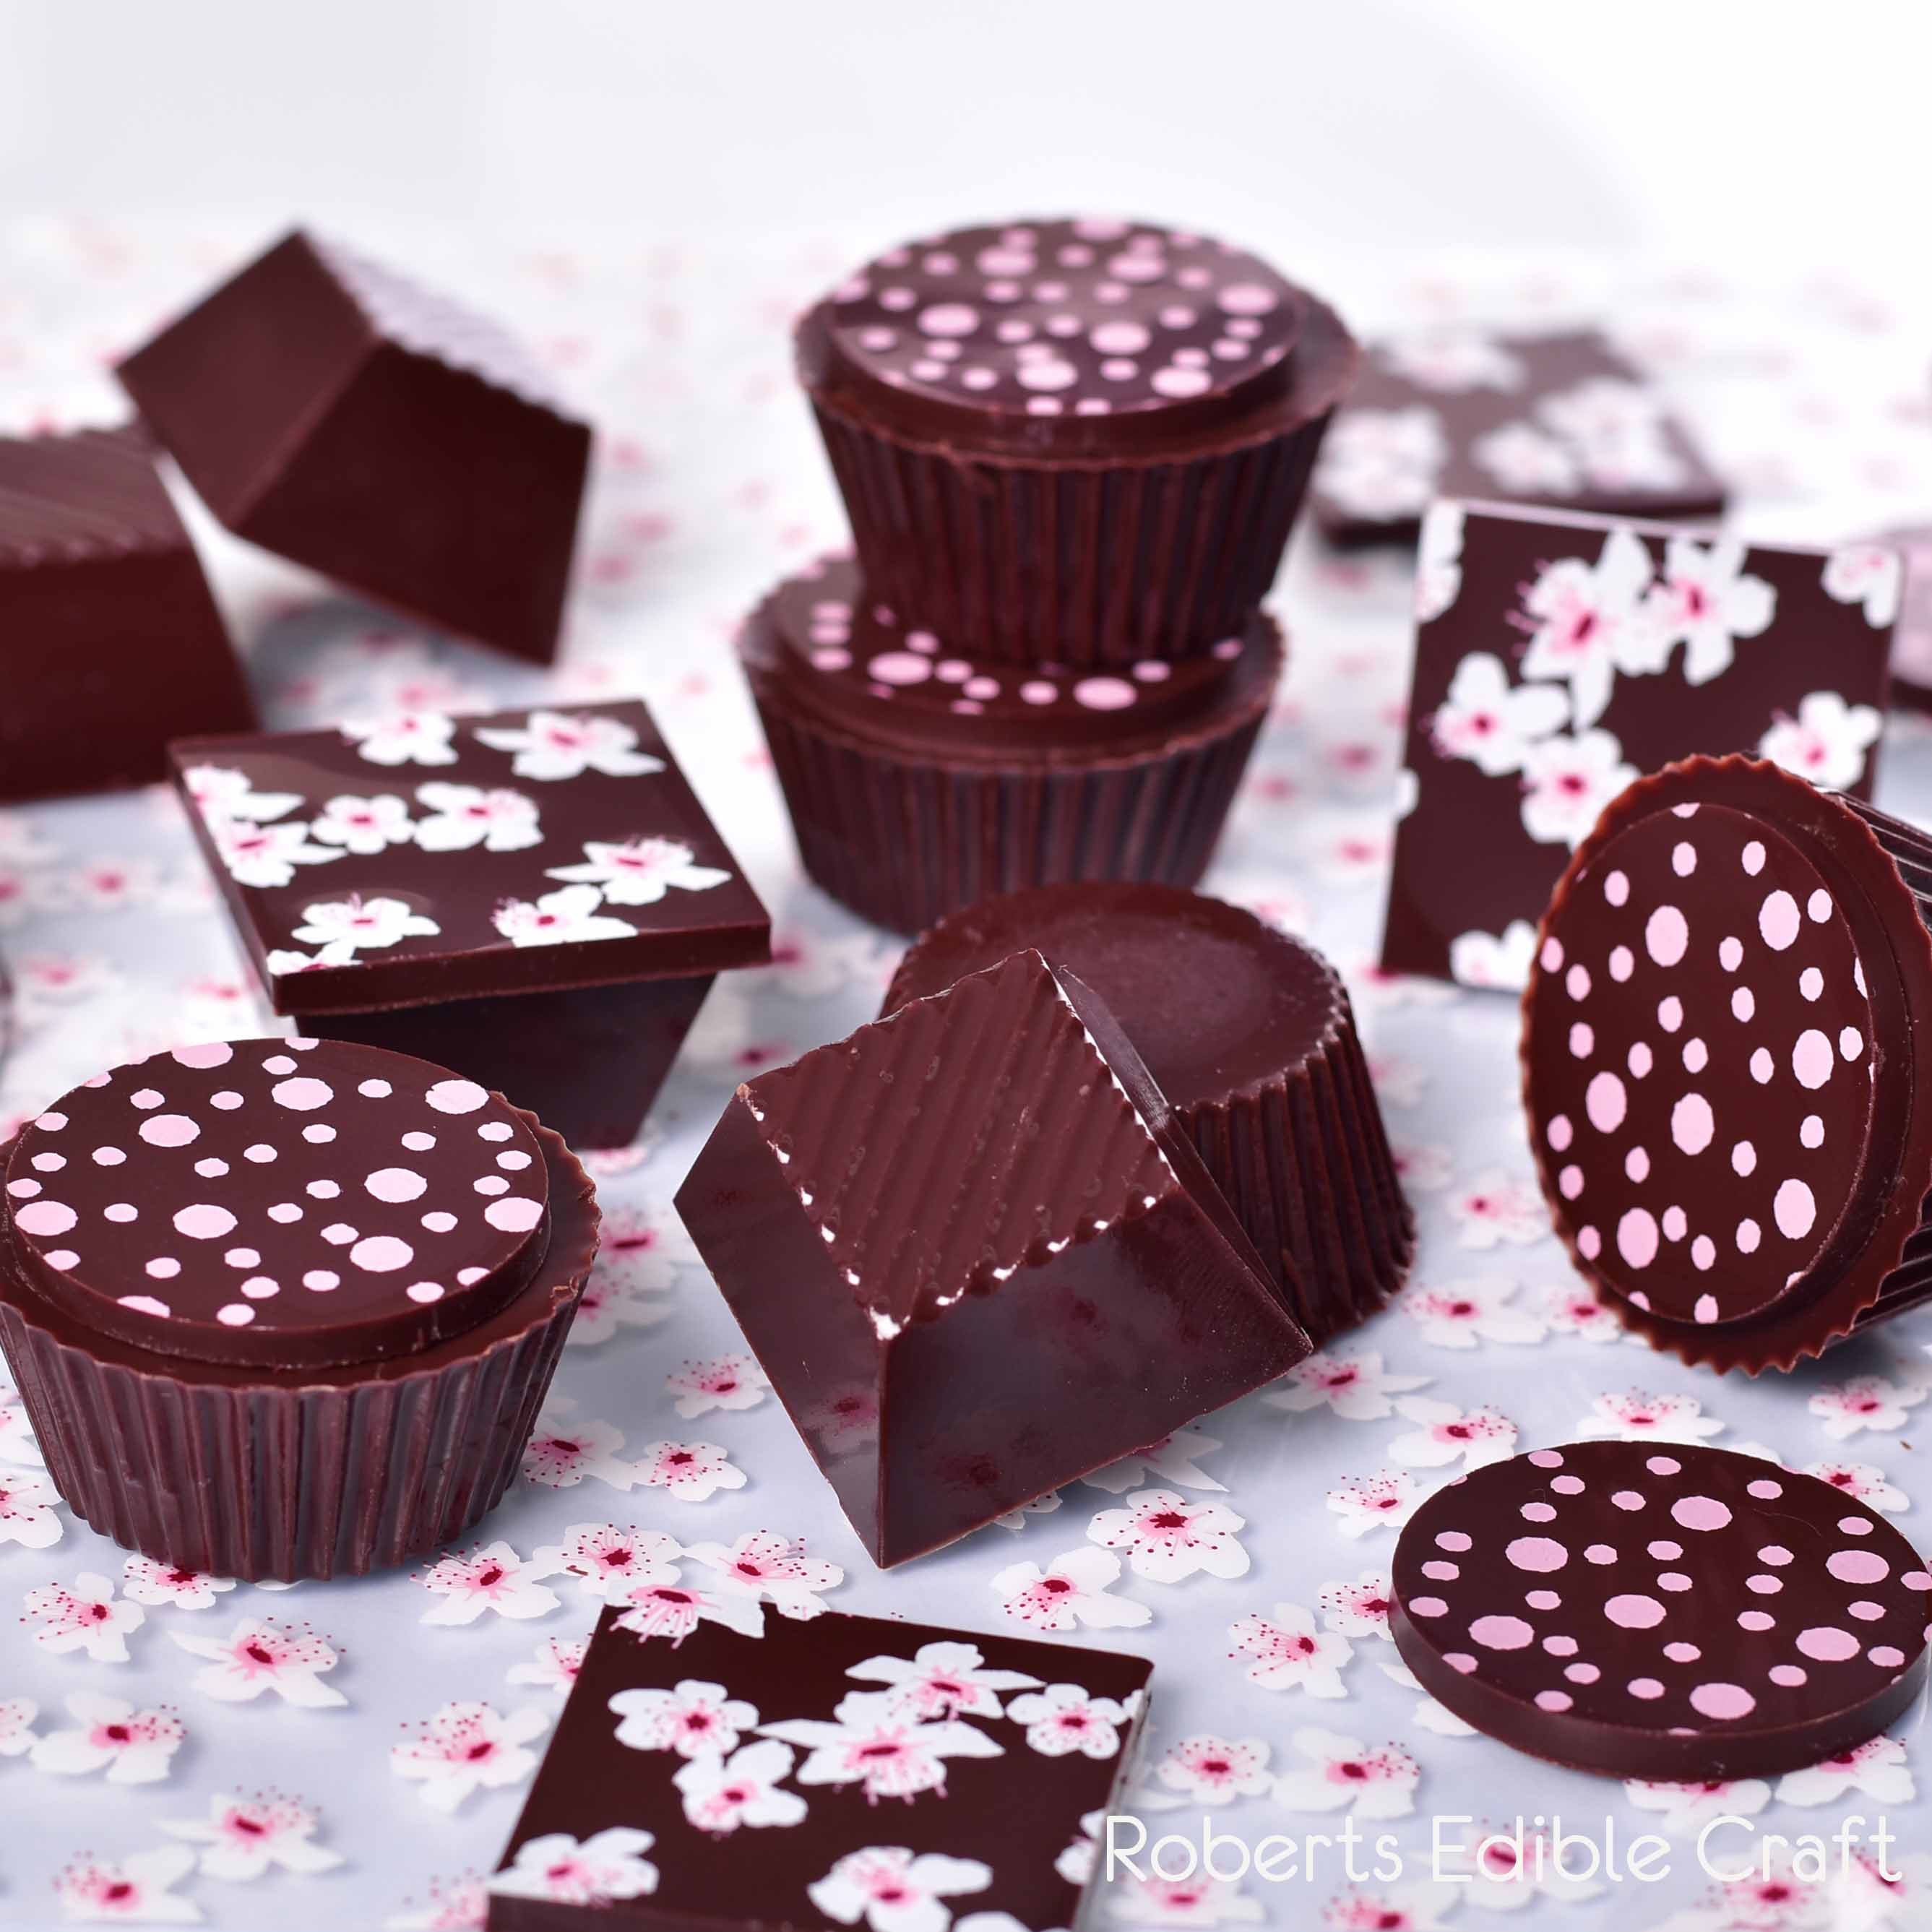 2019-roberts-mould-21-chocolates.jpg